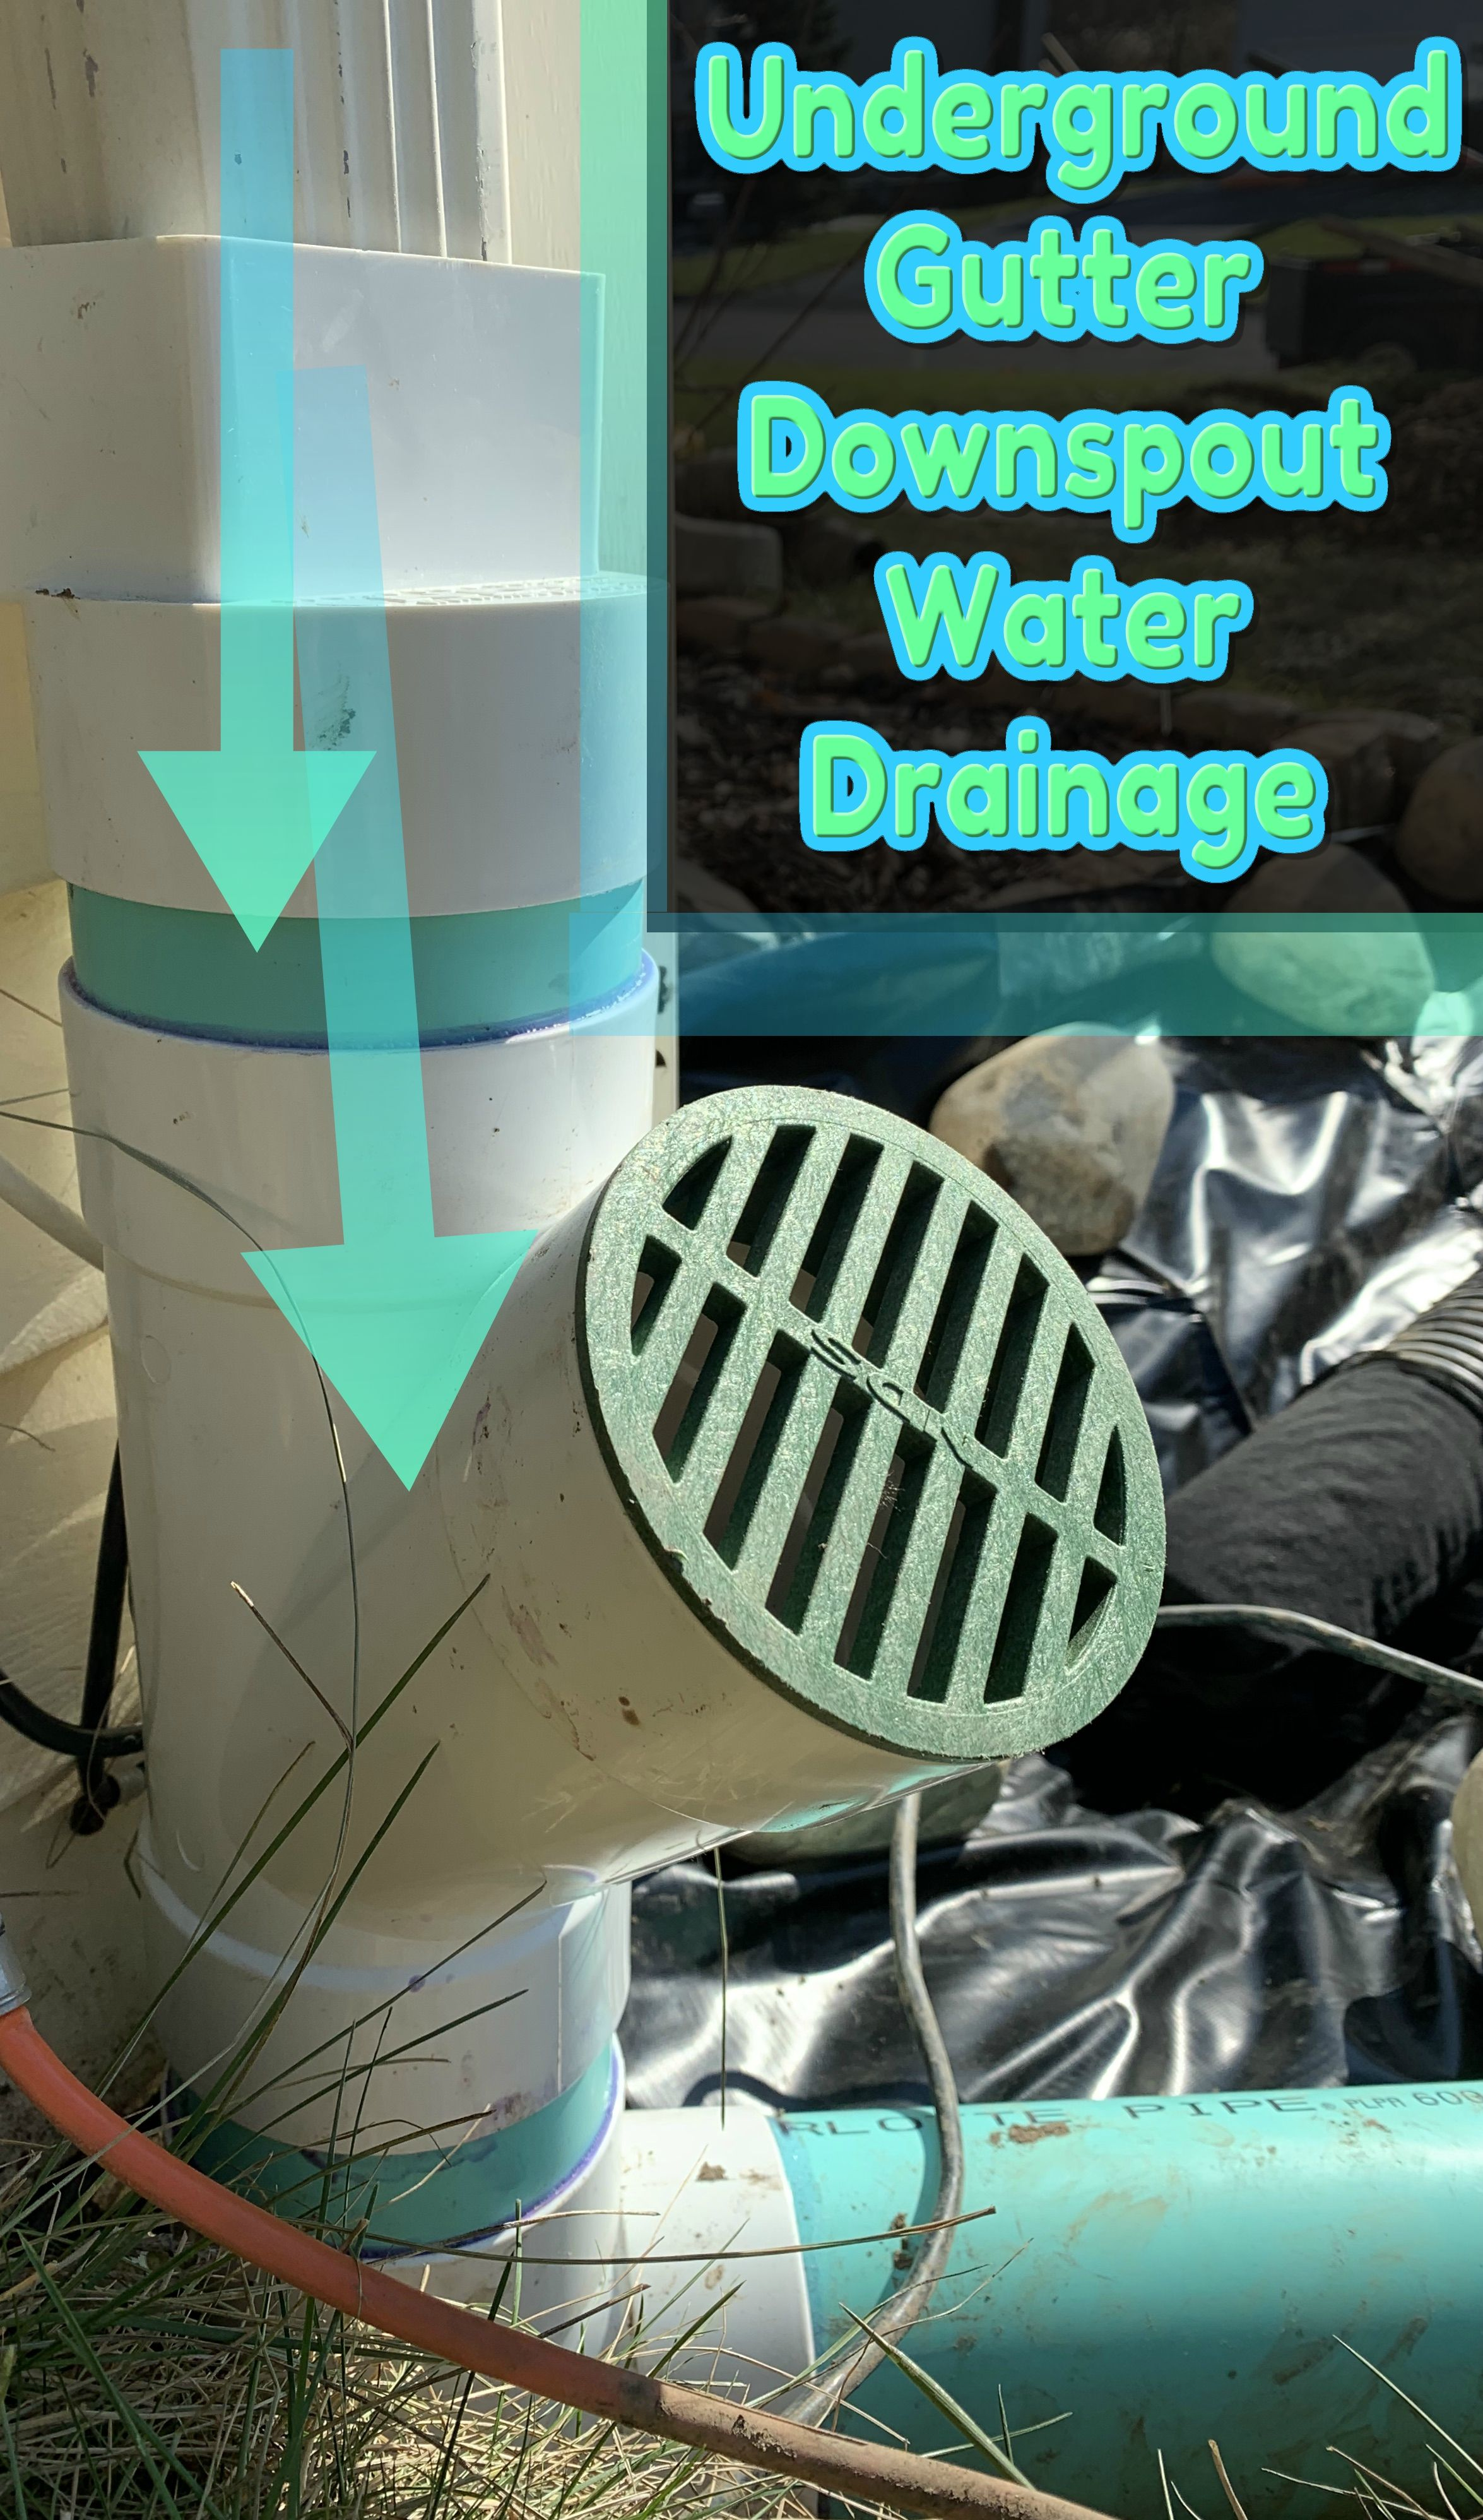 Underground Gutter Downspout Drainage System Installation Draining Roof Water Away From Foundation Downspout Drainage Drainage Drainage Solutions